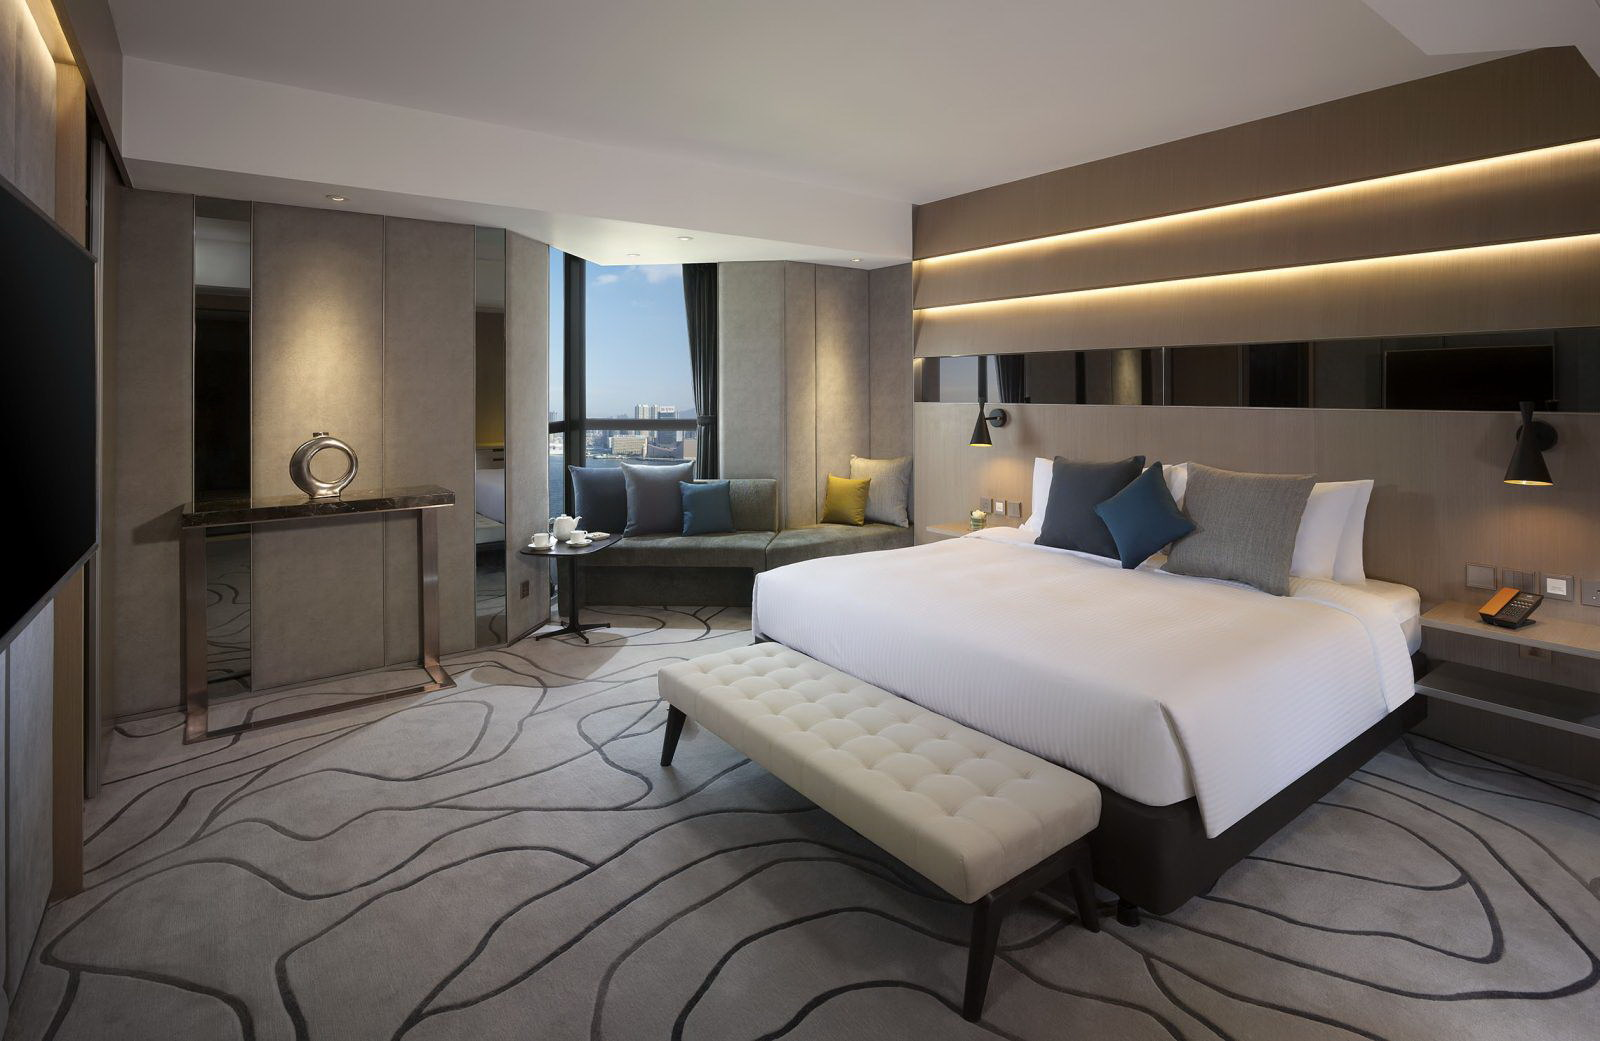 The Optimum Floor Executive Deluxe Room